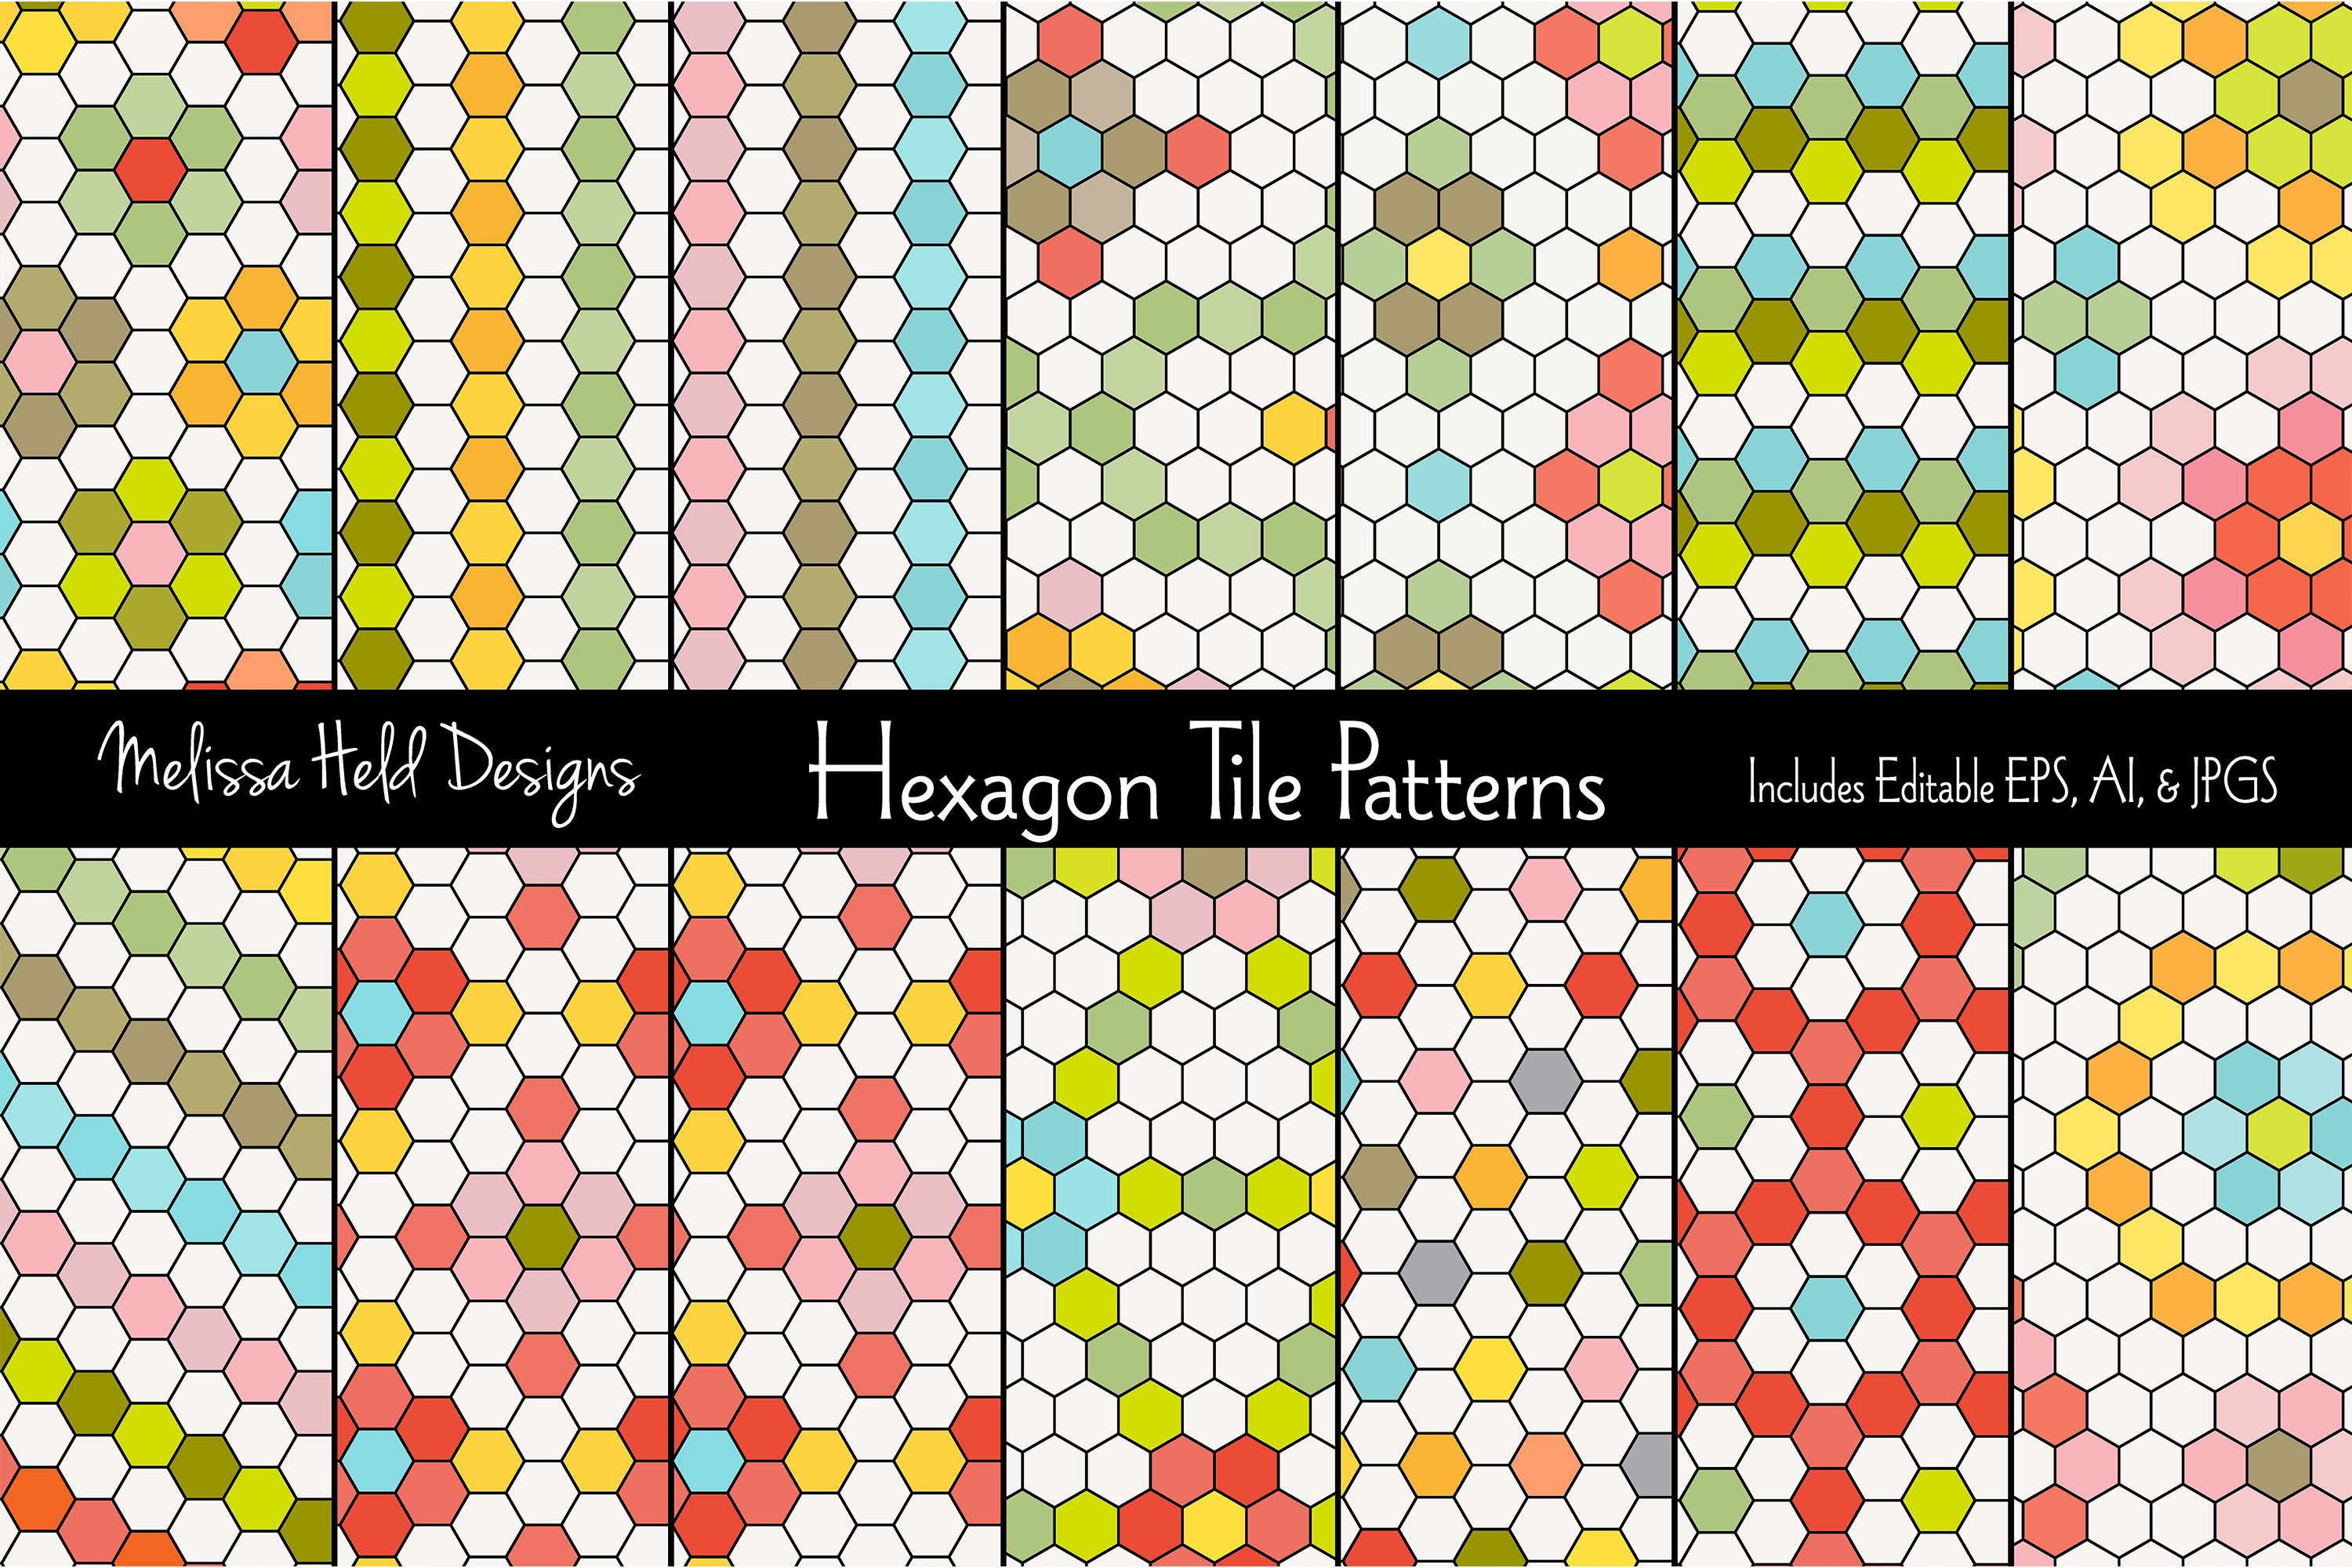 Hexagon Tile Patterns example image 1